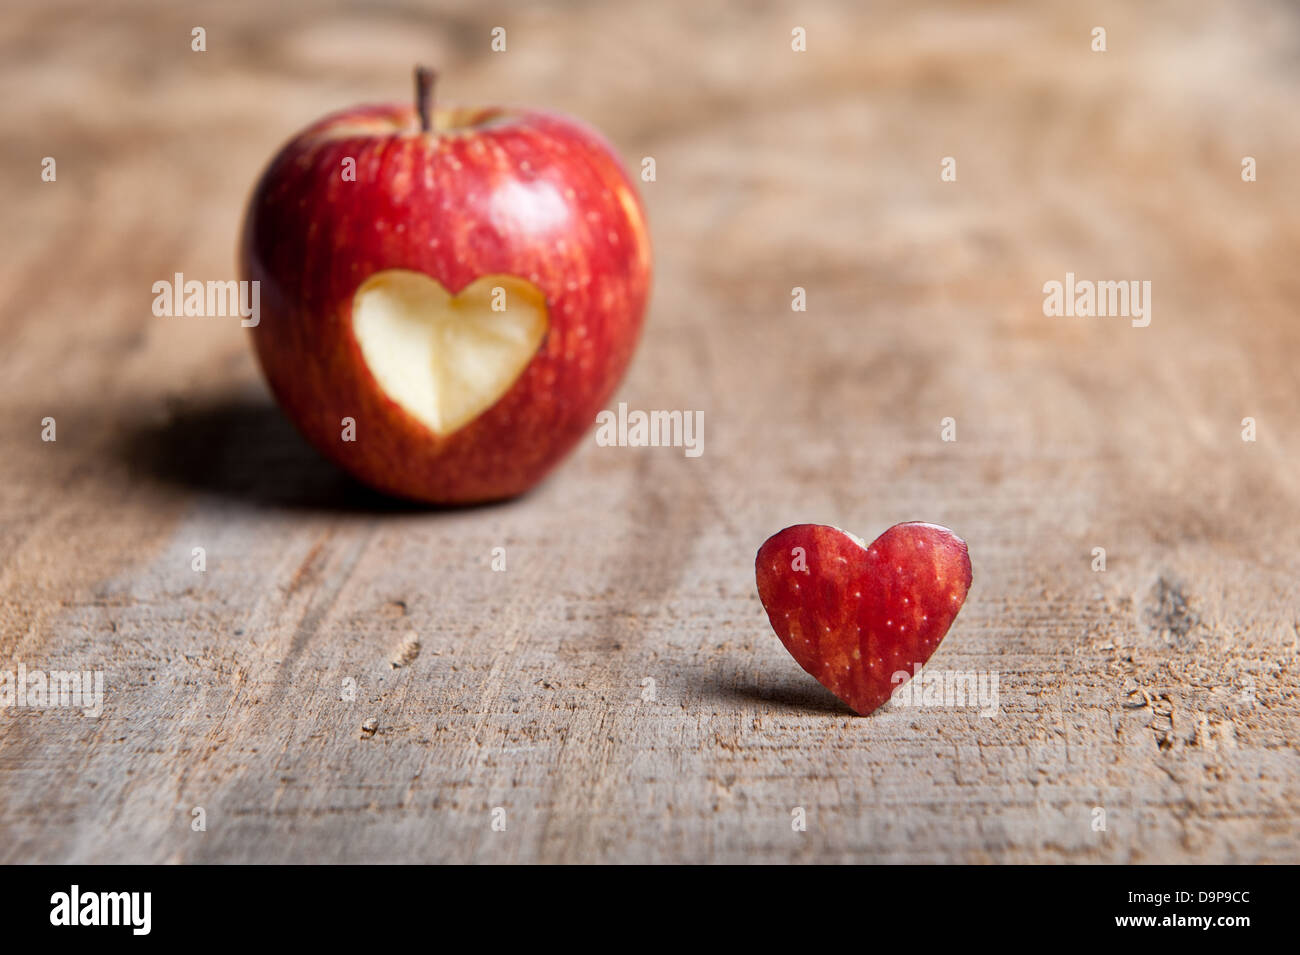 Red Apple With Heart Shape Cut Out The Is Placed In Front Next To On A Warm Toned Wooden Surface Love